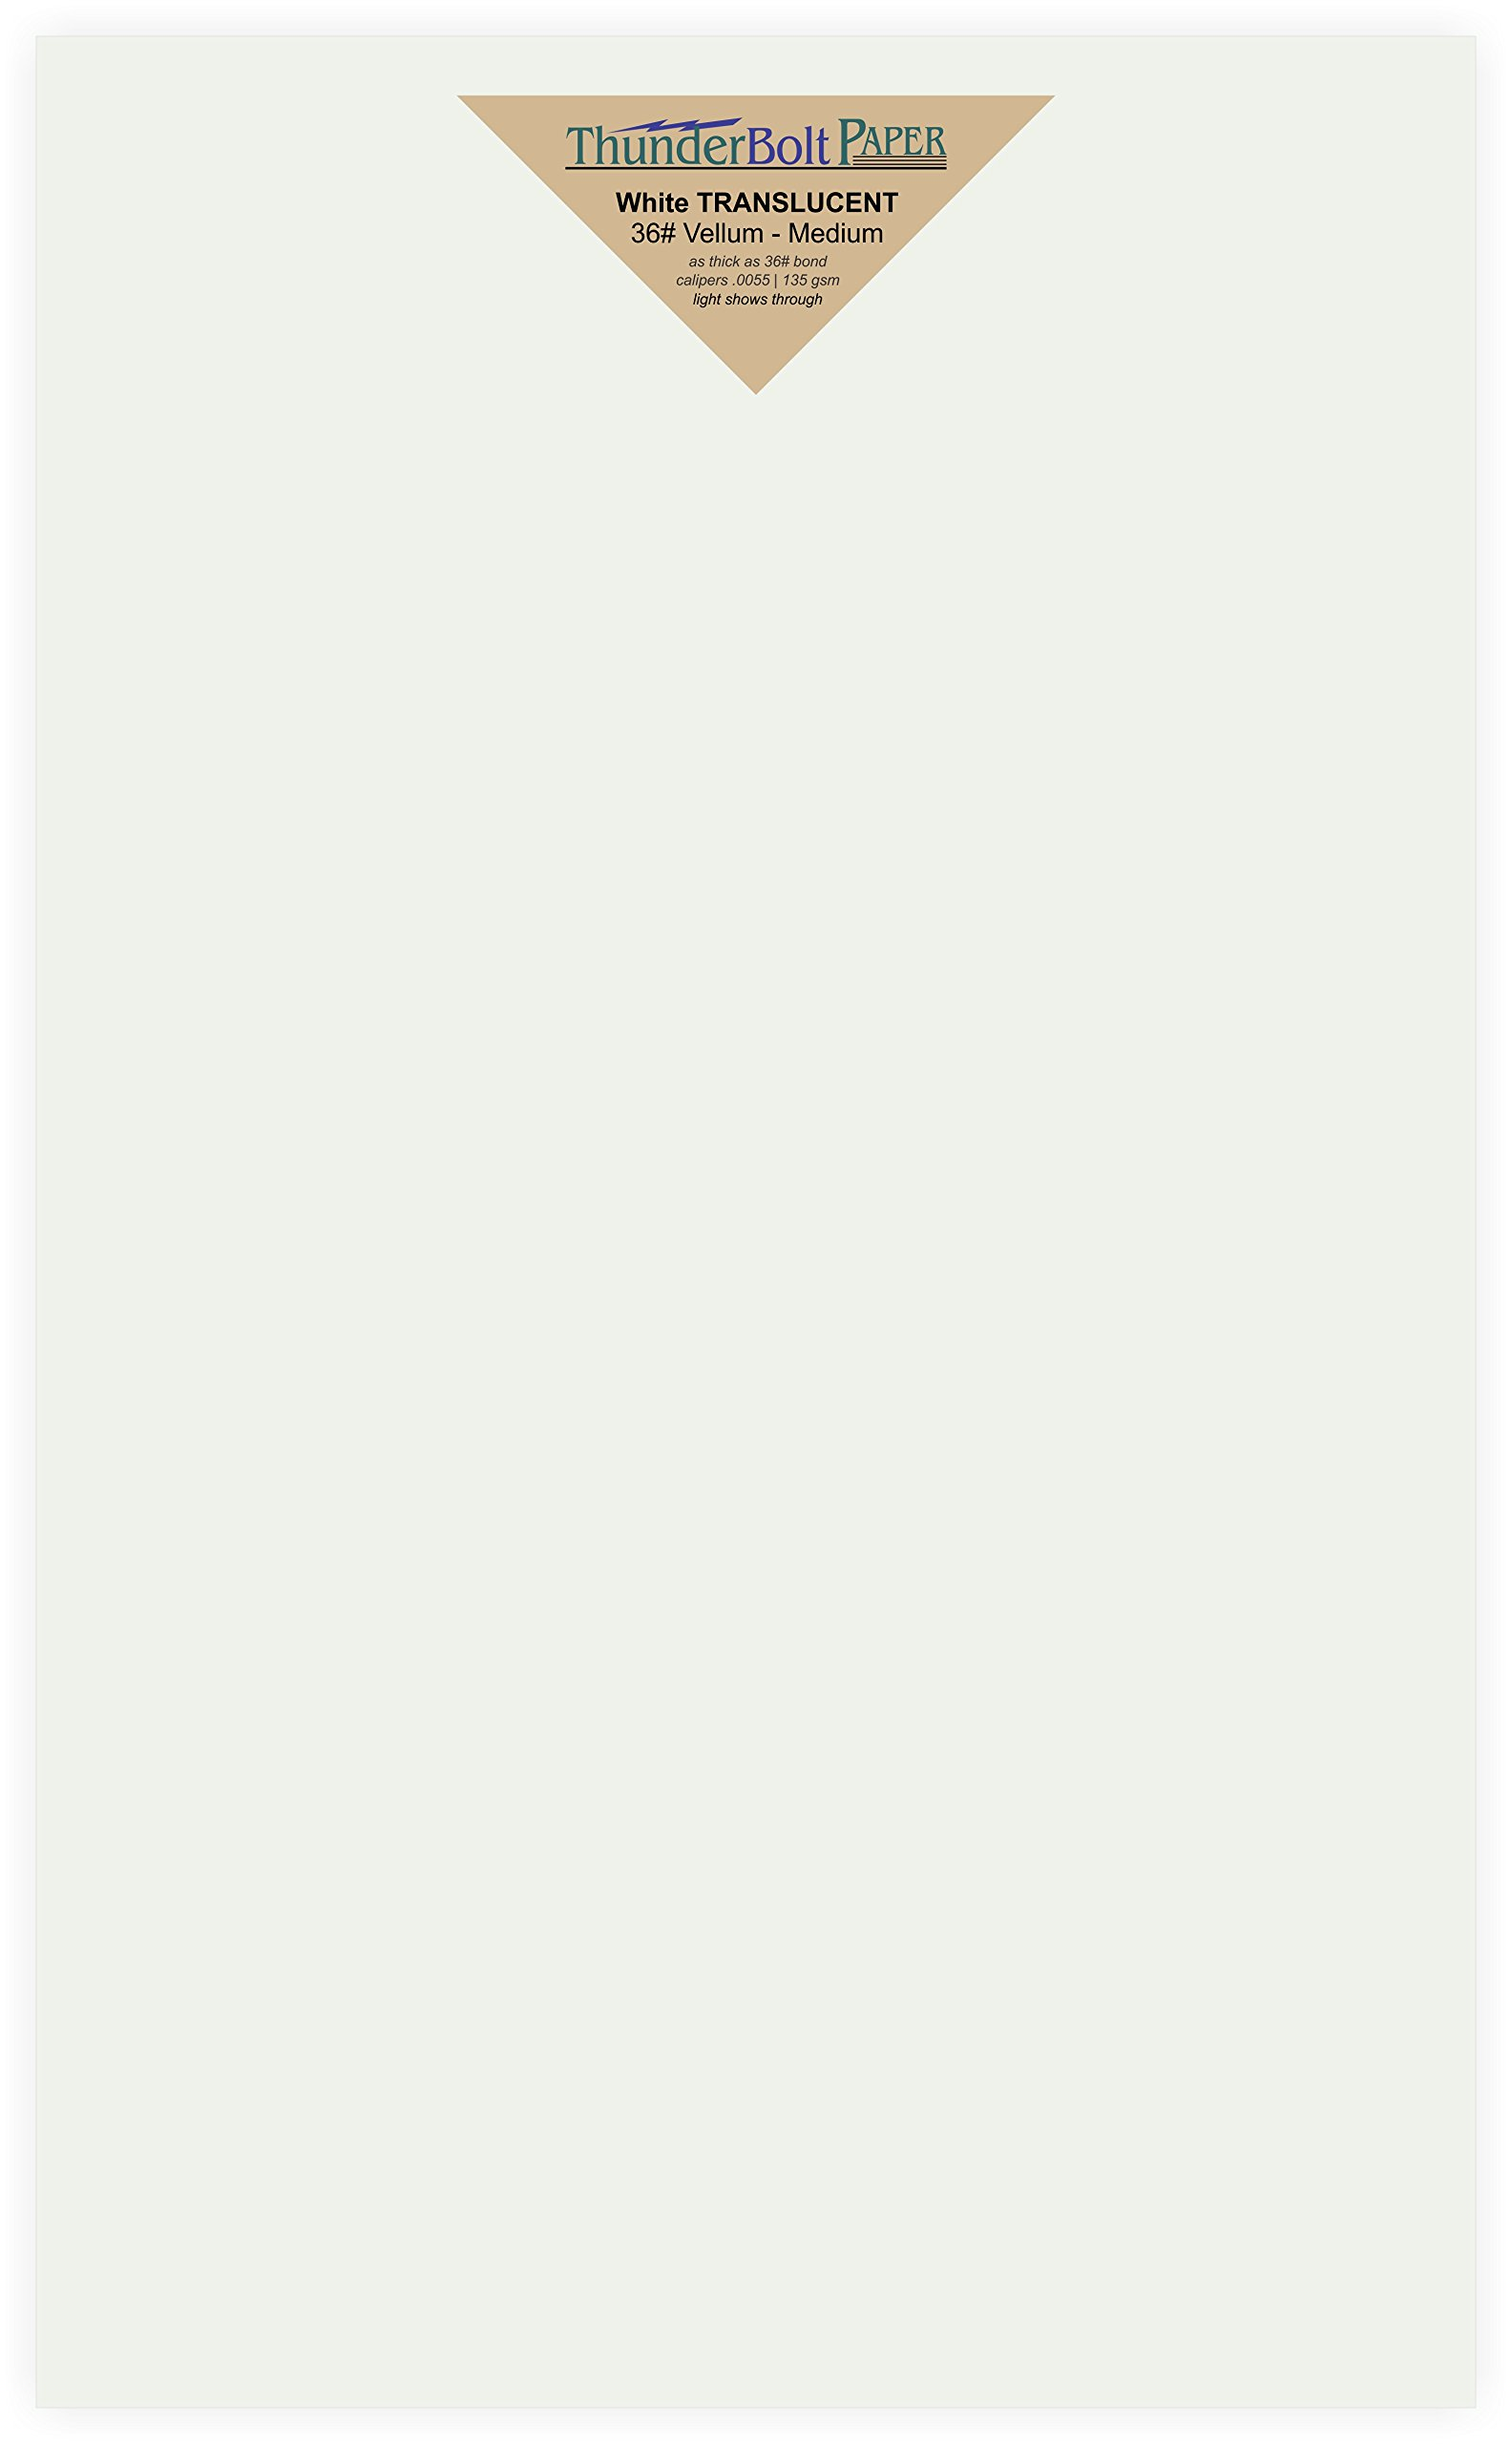 150 Soft White Translucent - 36# (36 lb/pound) Medium thick - 8.5 X 14 Inches Legal|Menu Size - Heavier Weight Vellum Sheets Quality Paper for Fine Results - Fun|Formal - Not a Clear Transparent